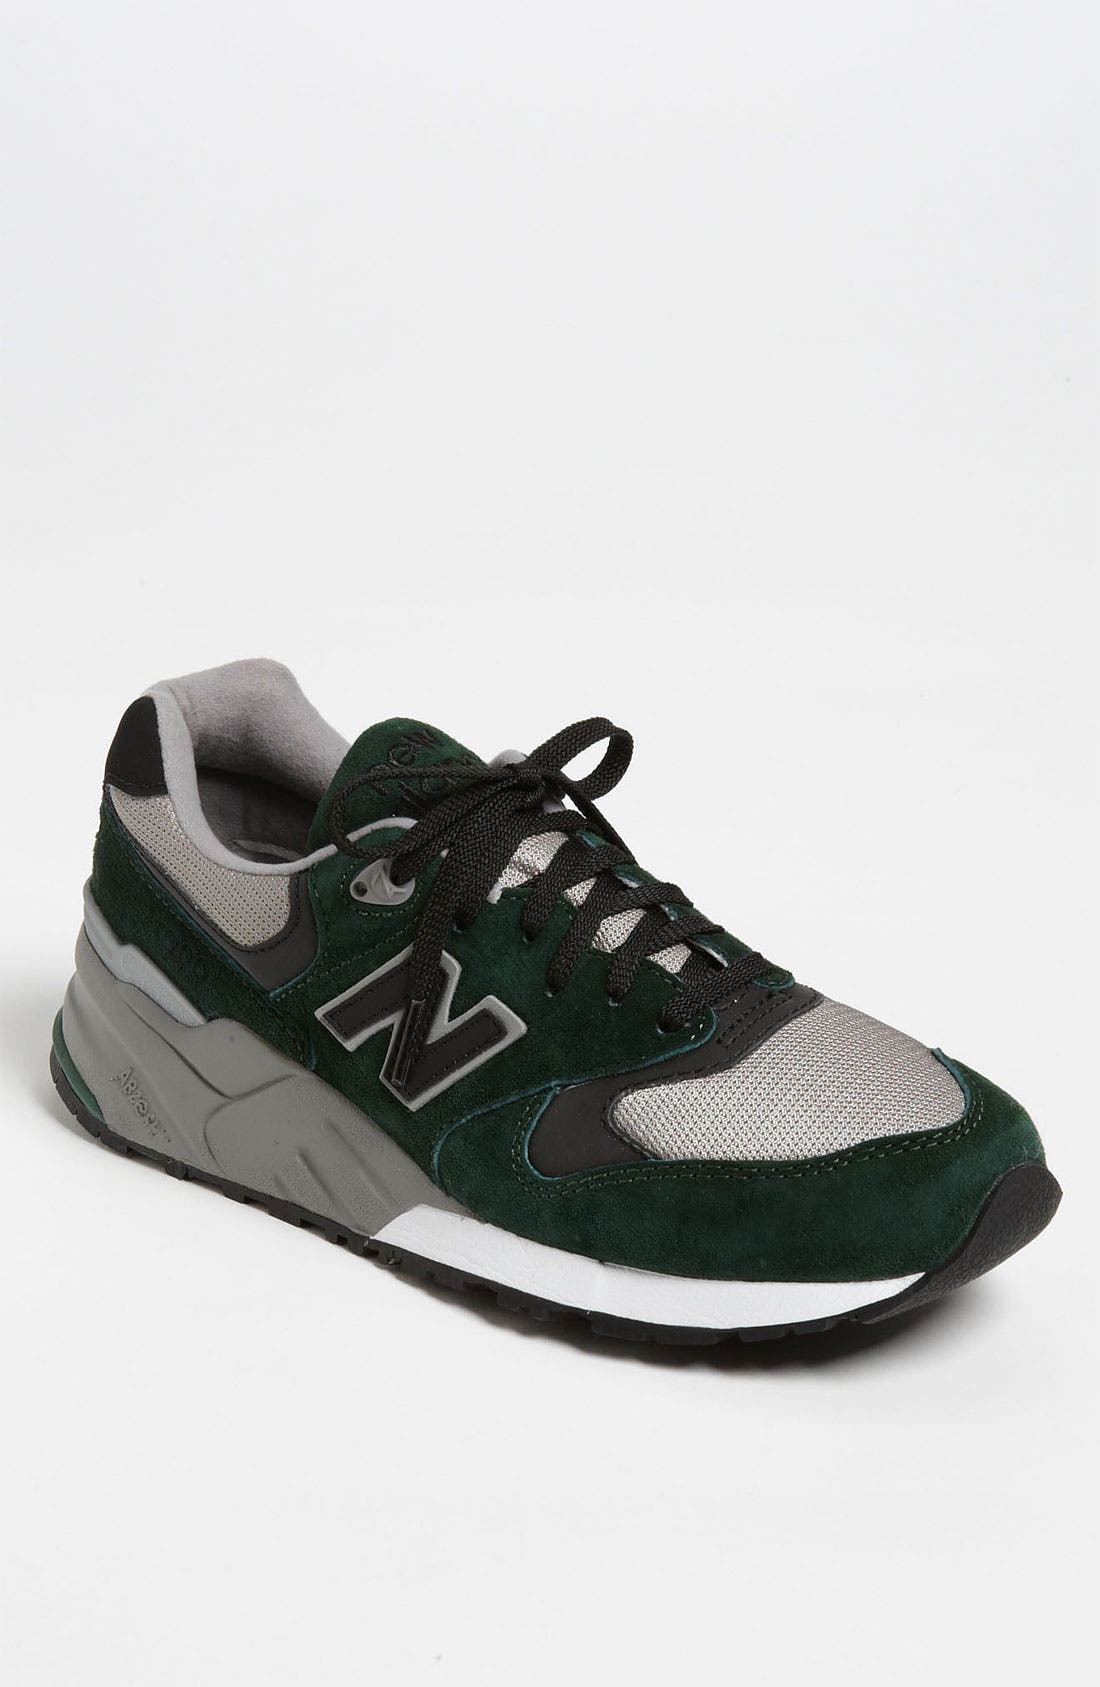 Alternate Image 1 Selected - New Balance '999 Bringback' Sneaker (Online Only)